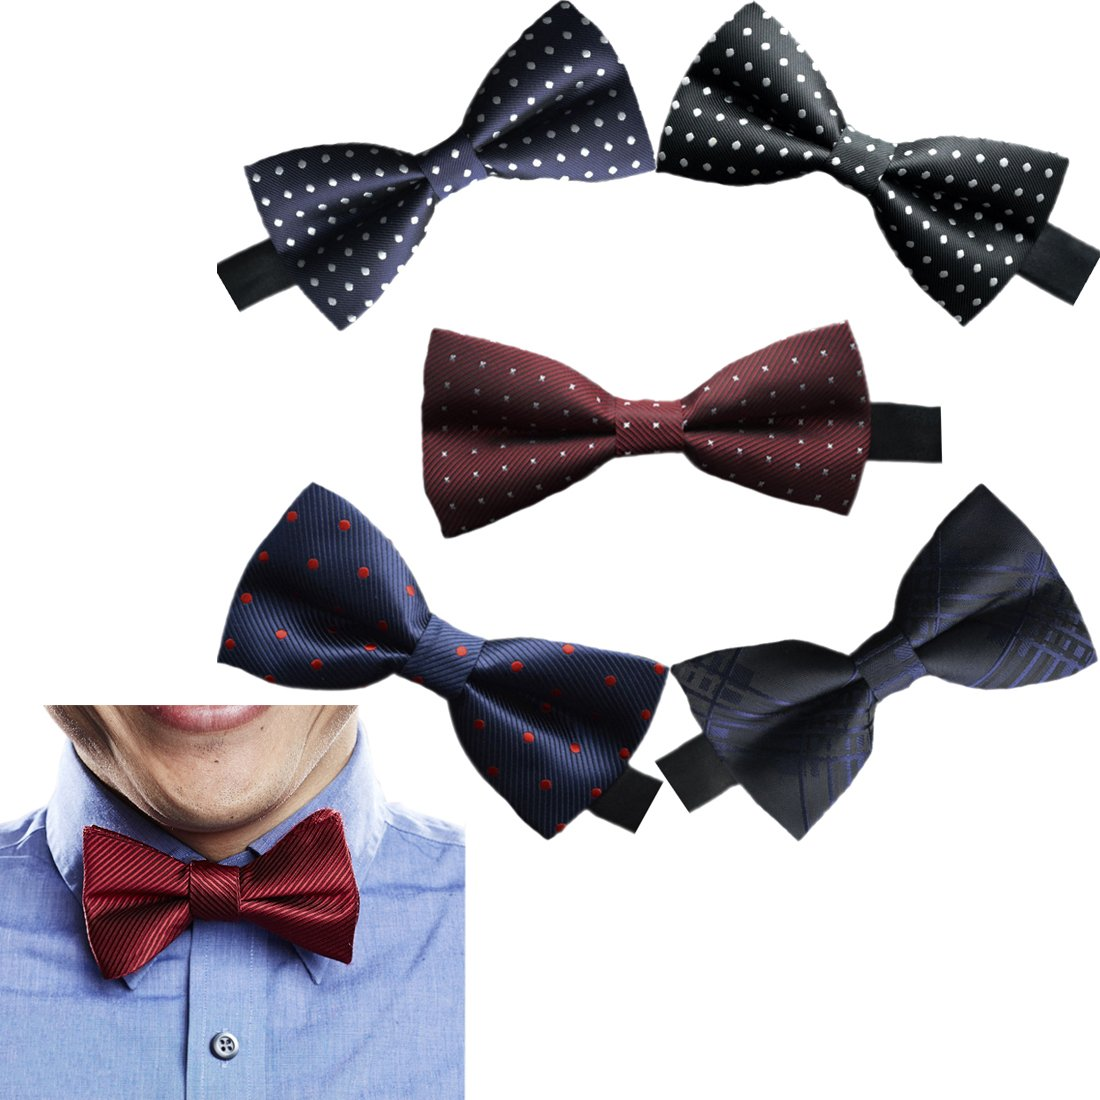 Sept.Filles Men's Tie Clip On Bow Tie Packs of 5 (B) SOCK-64B